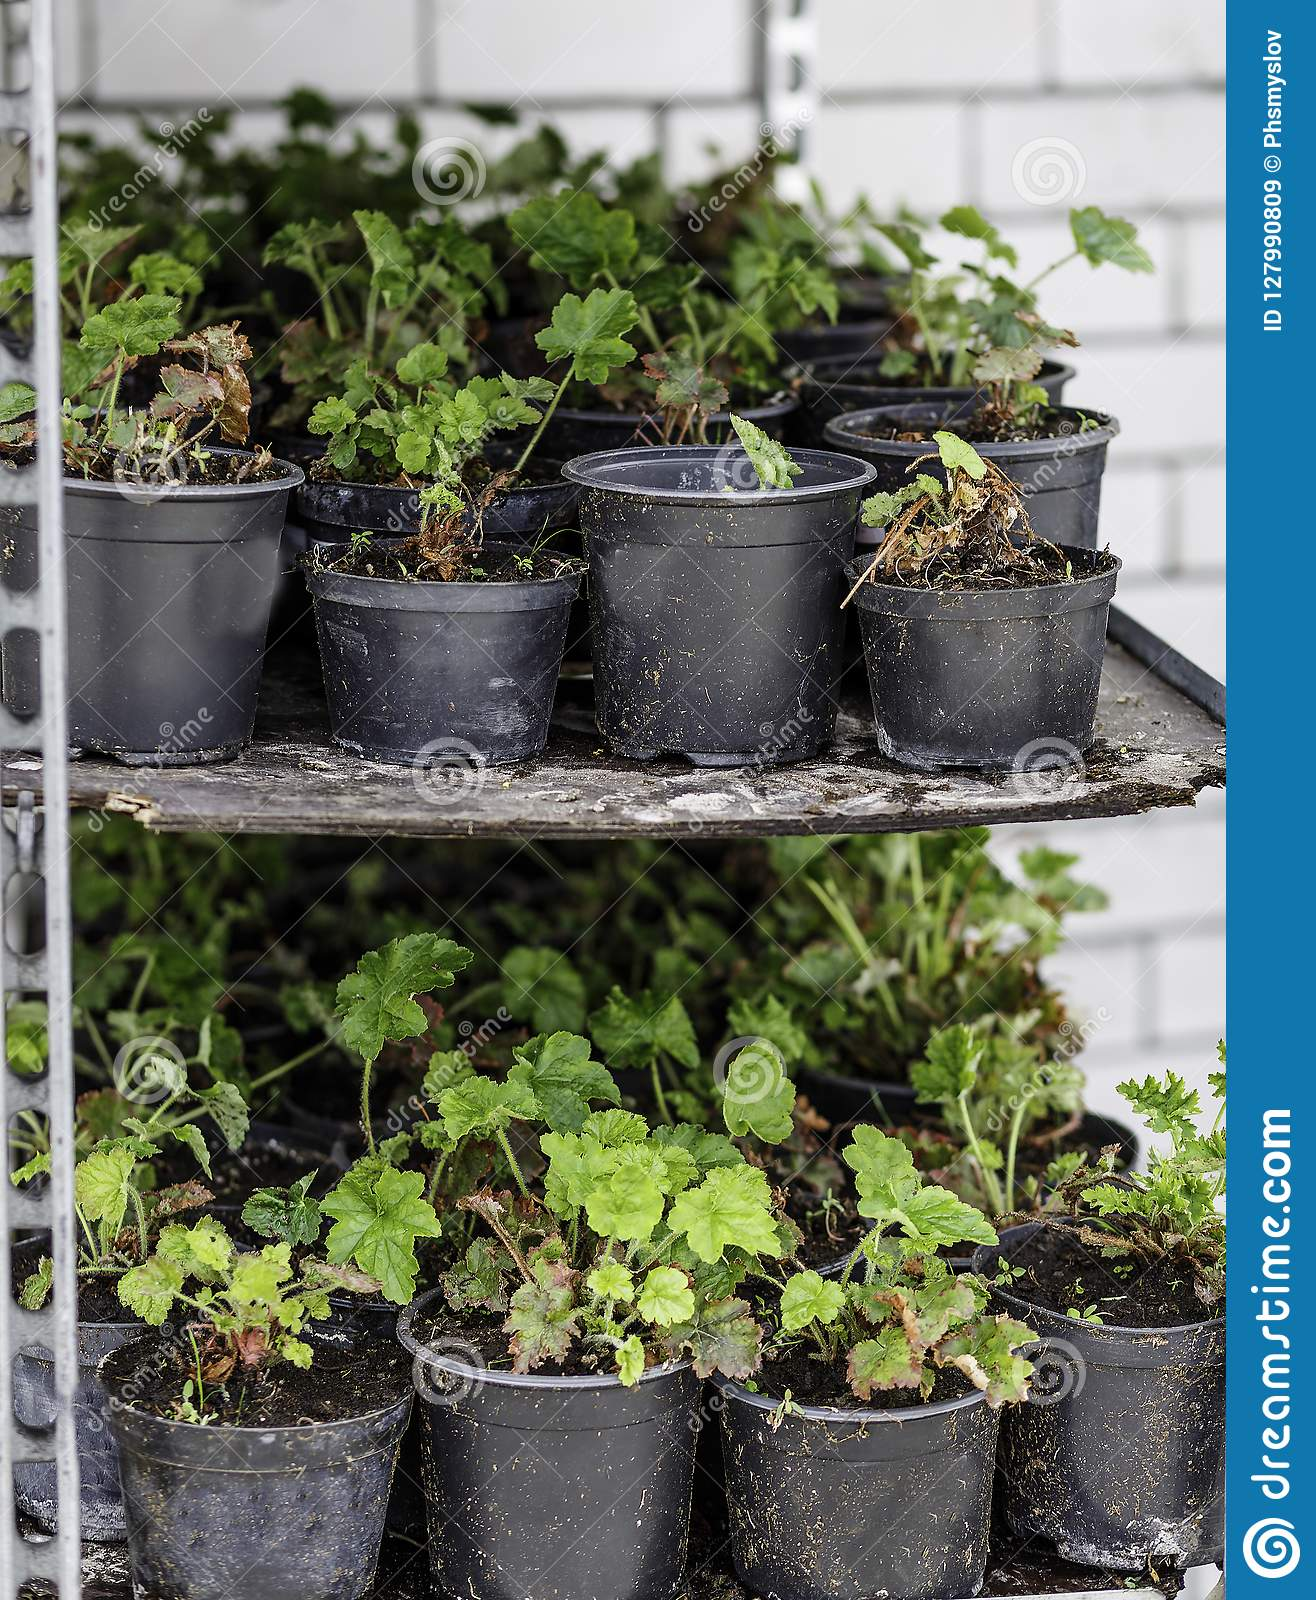 Flowers In Pots With Soil For Transplanting Them To Their